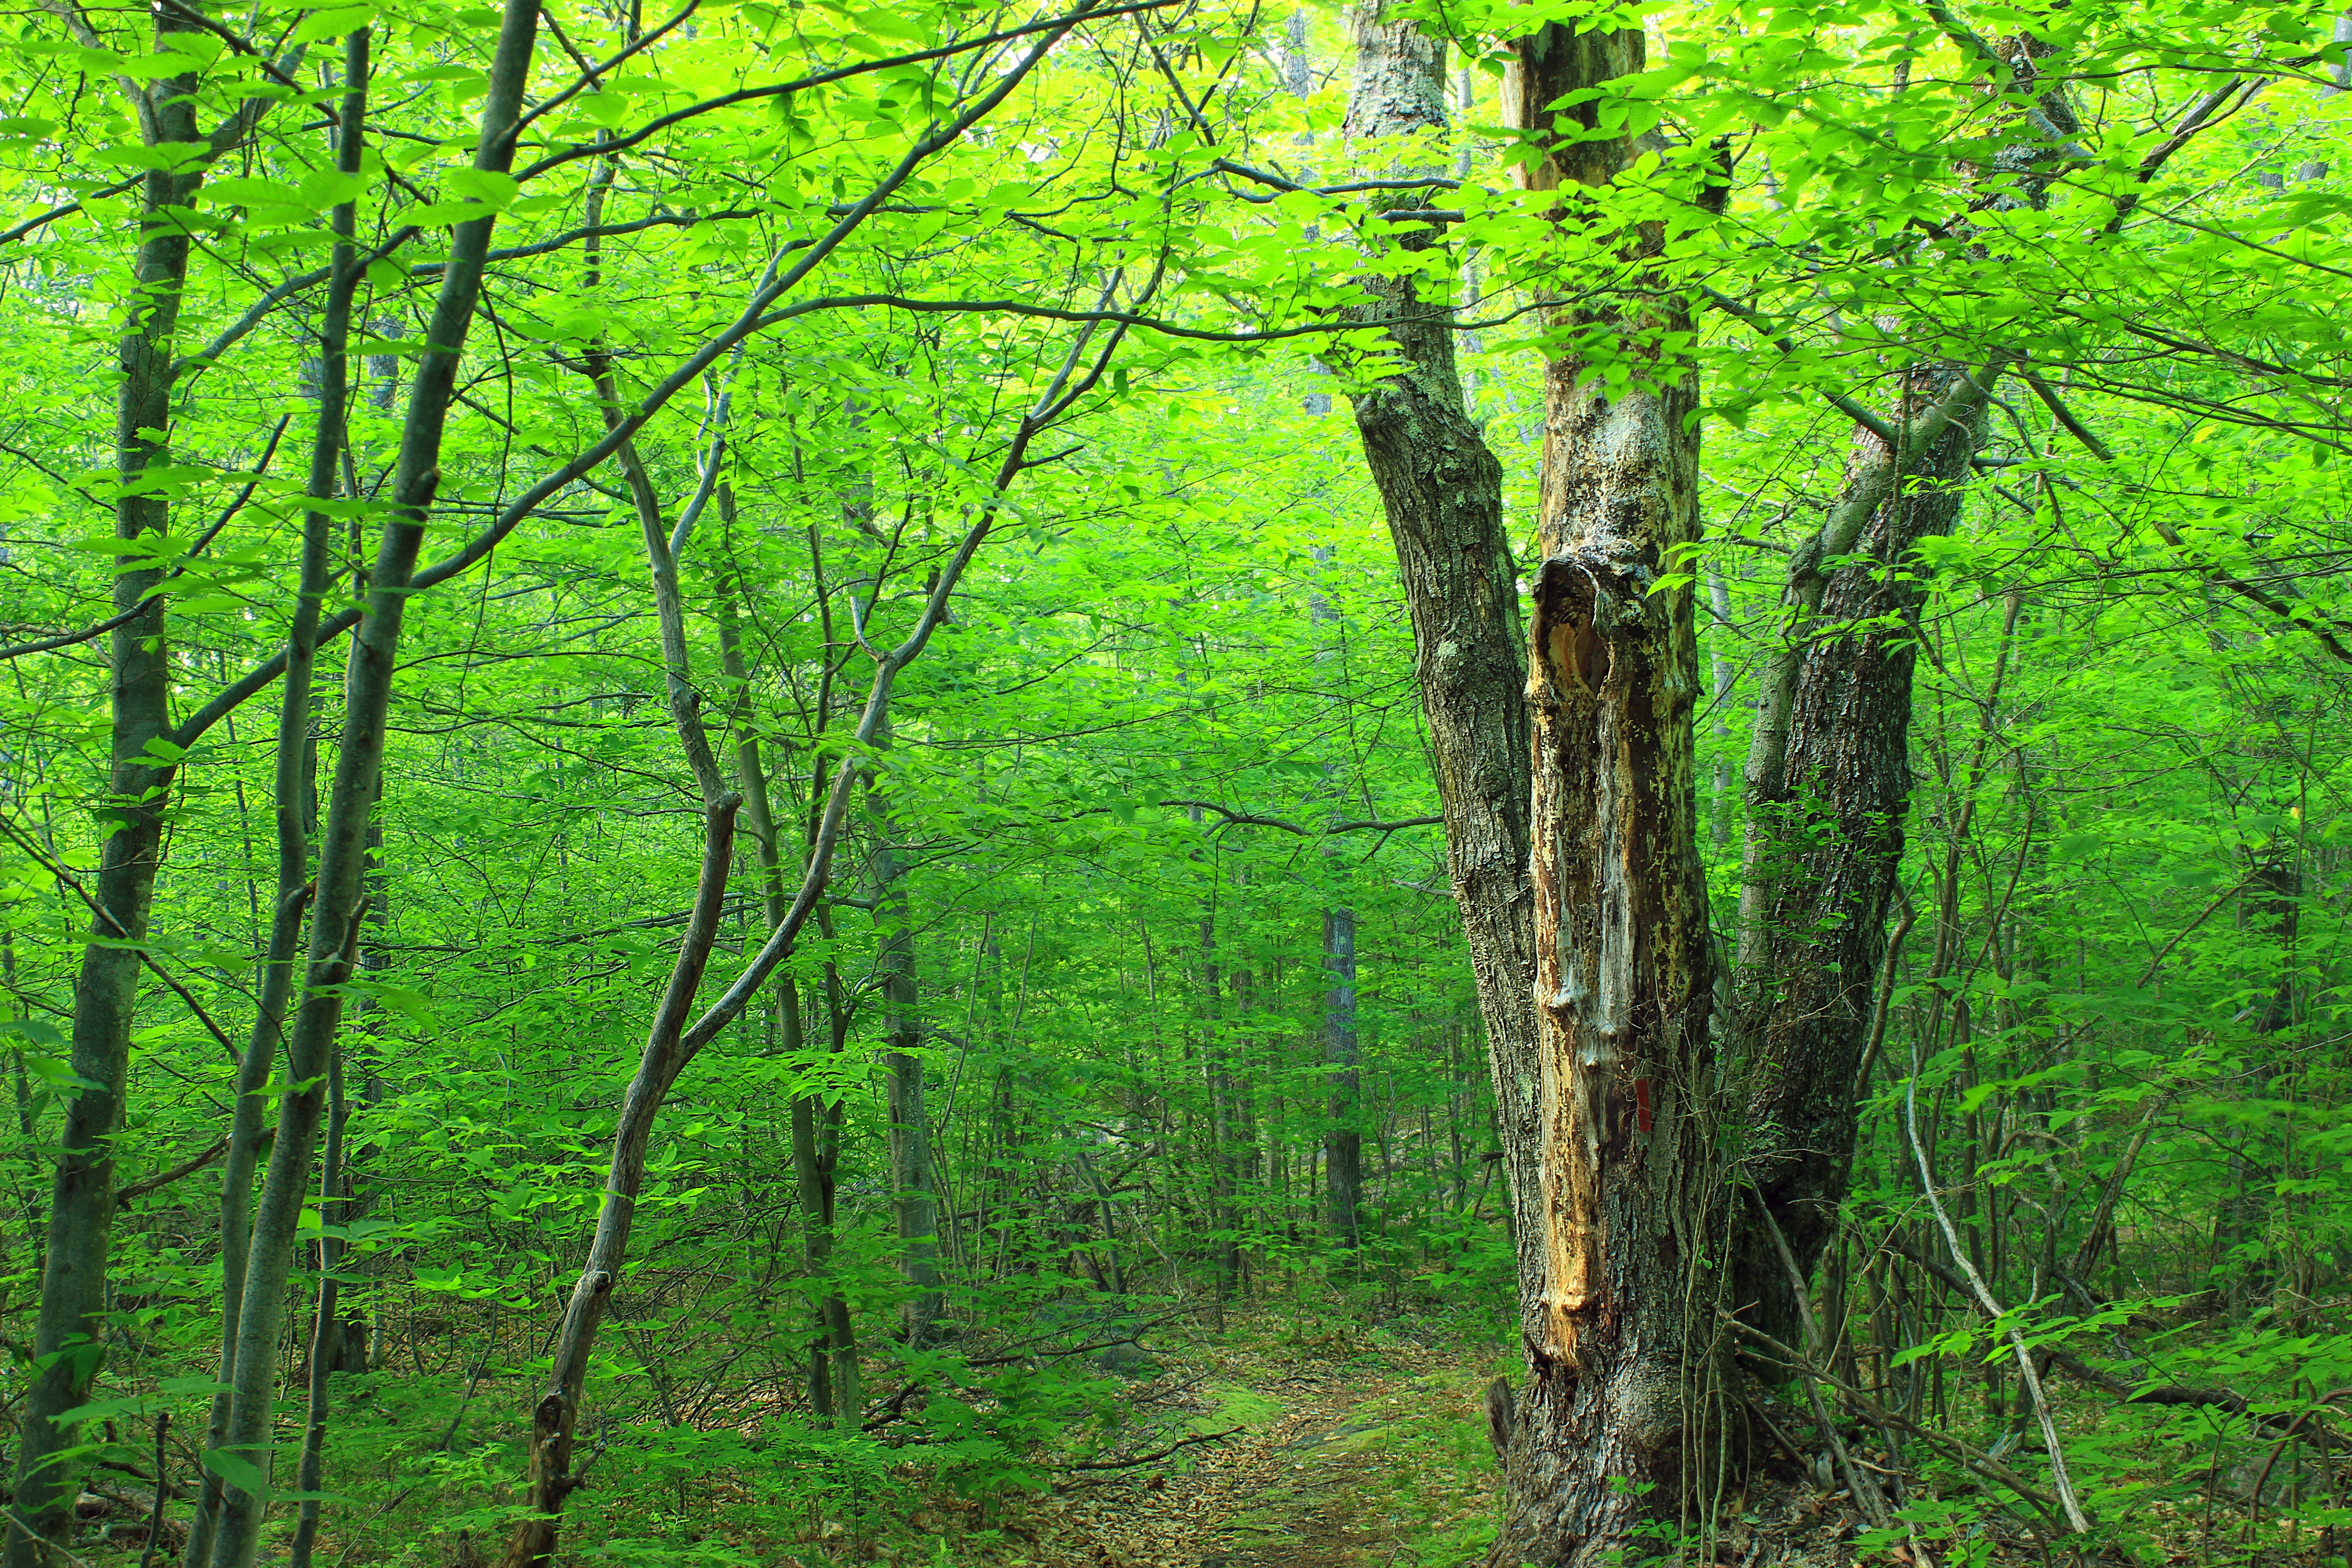 Brown trunk green leaves tree on forest photo